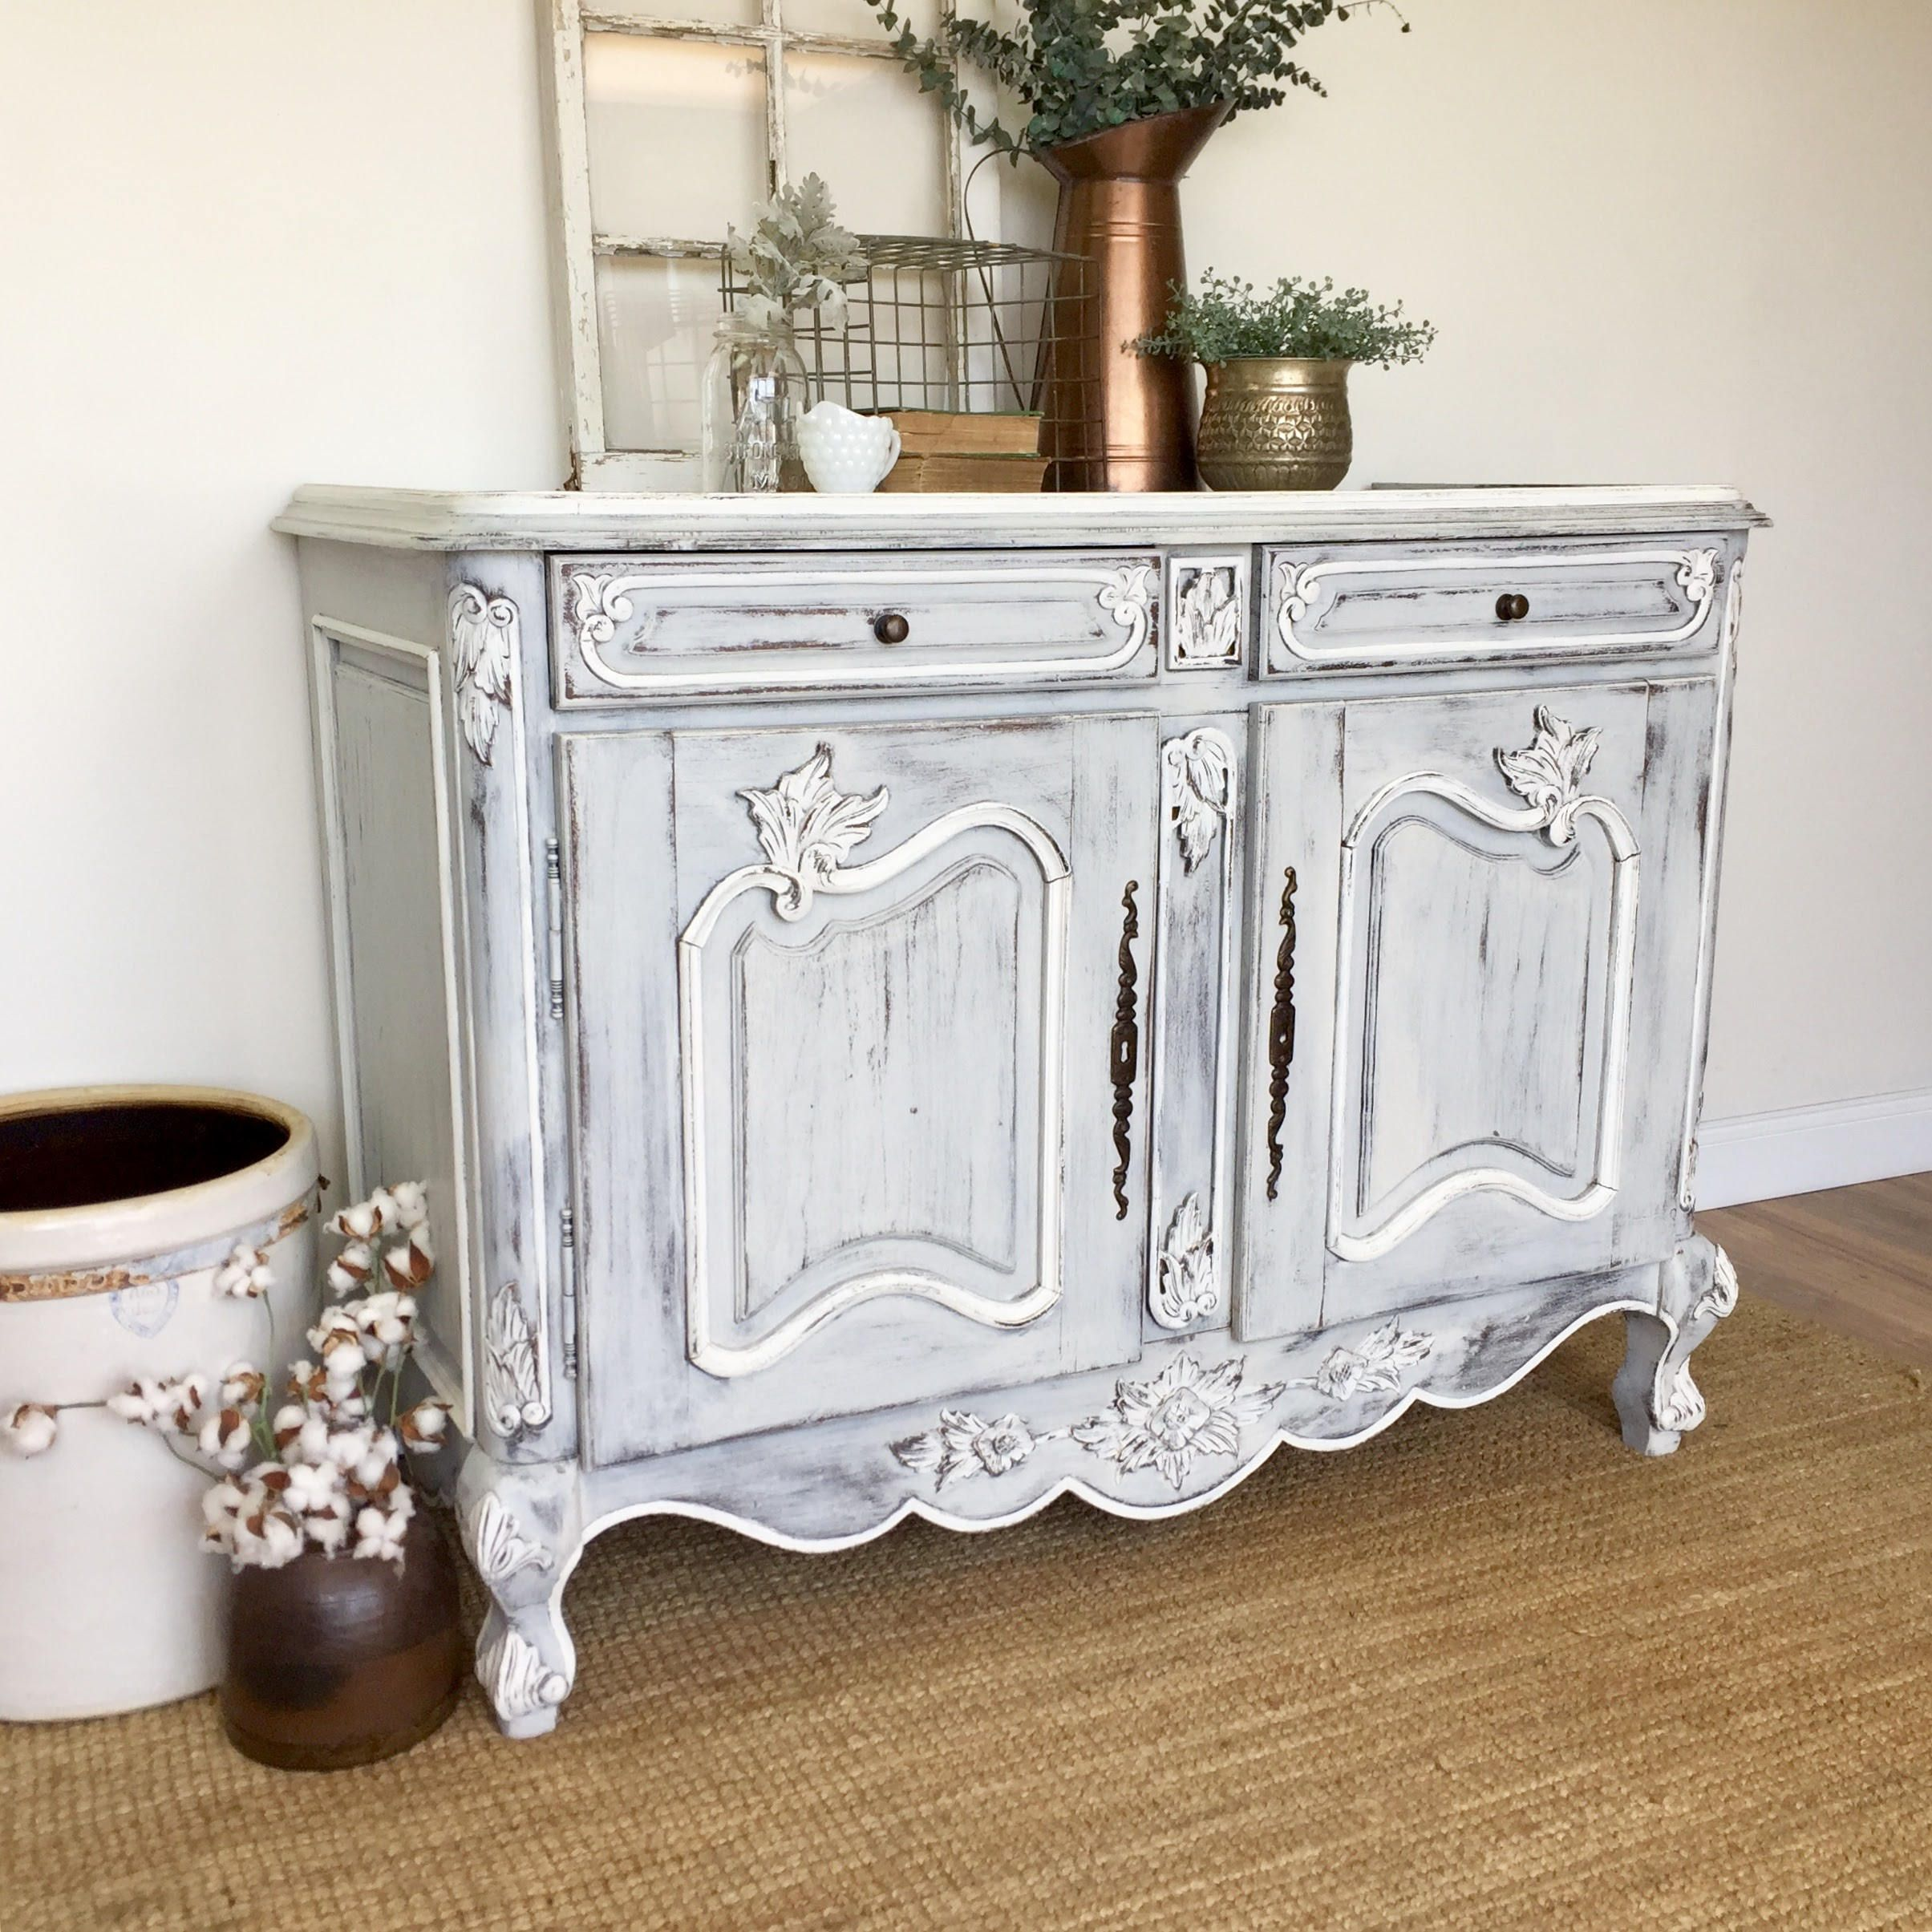 Antique Sideboard Buffet French Country Furniture Vintage Home Decor